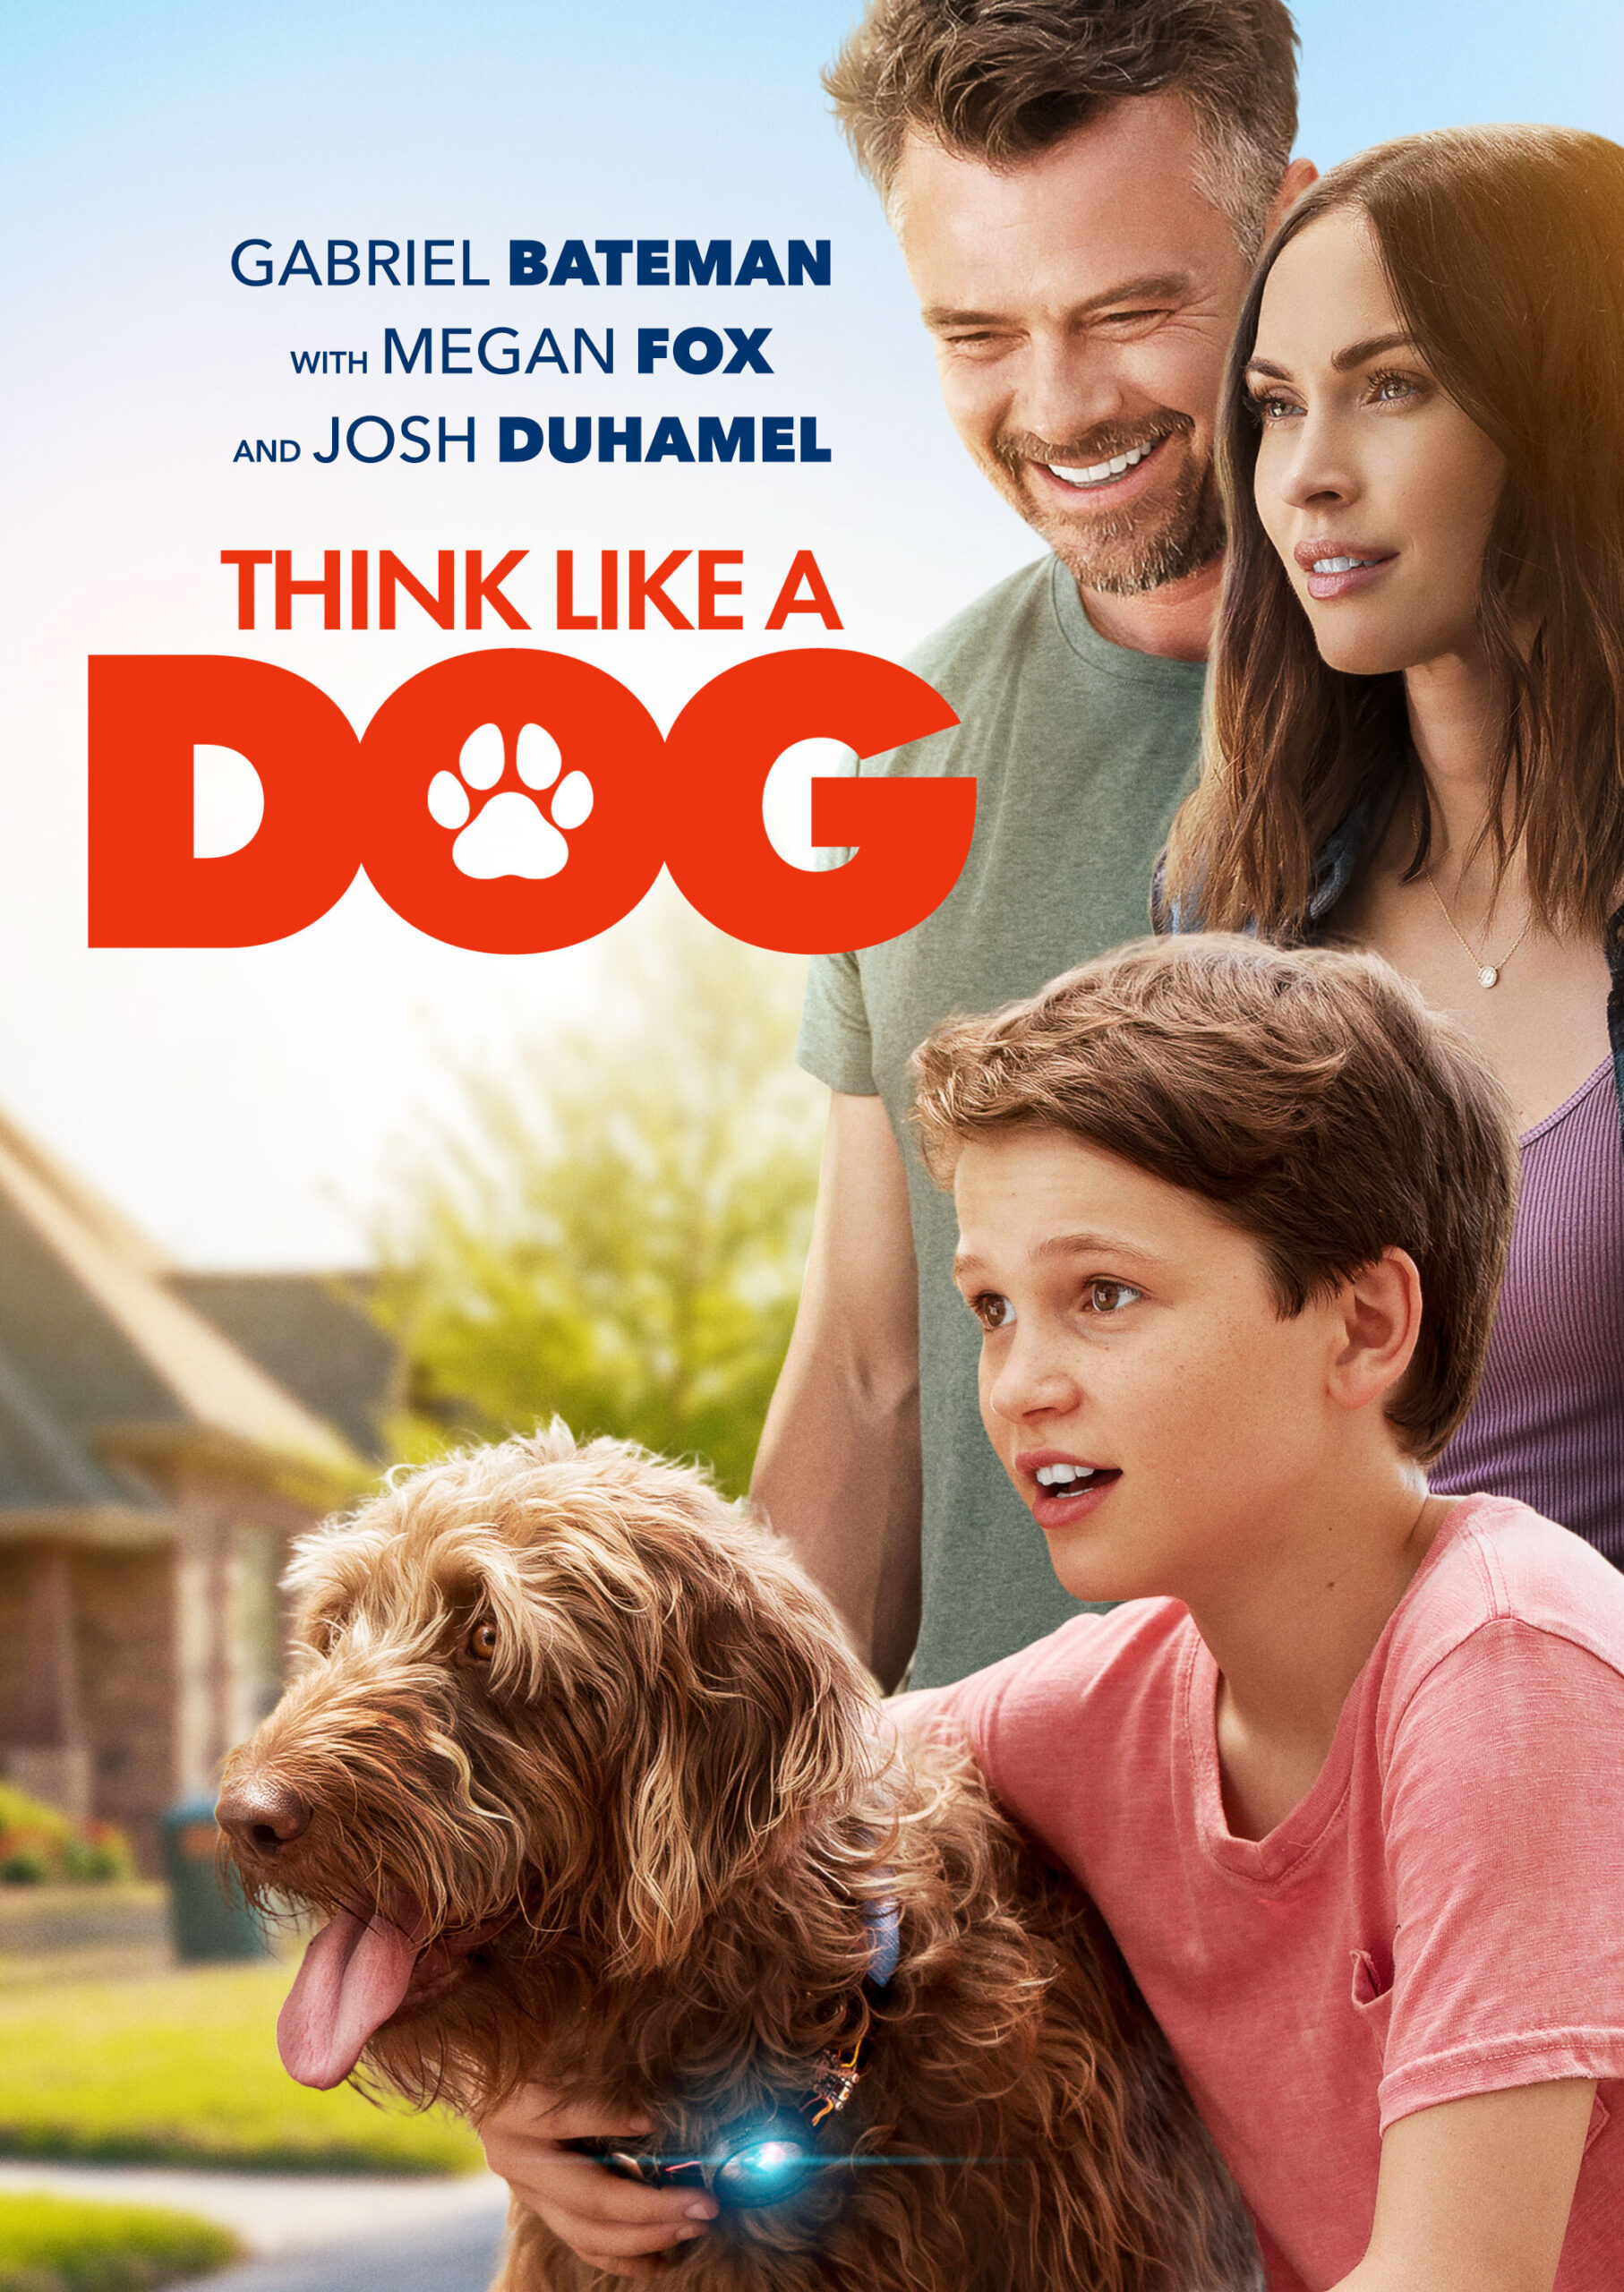 Think Like a Dog Poster, Think Like a Dog Parent Movie Review